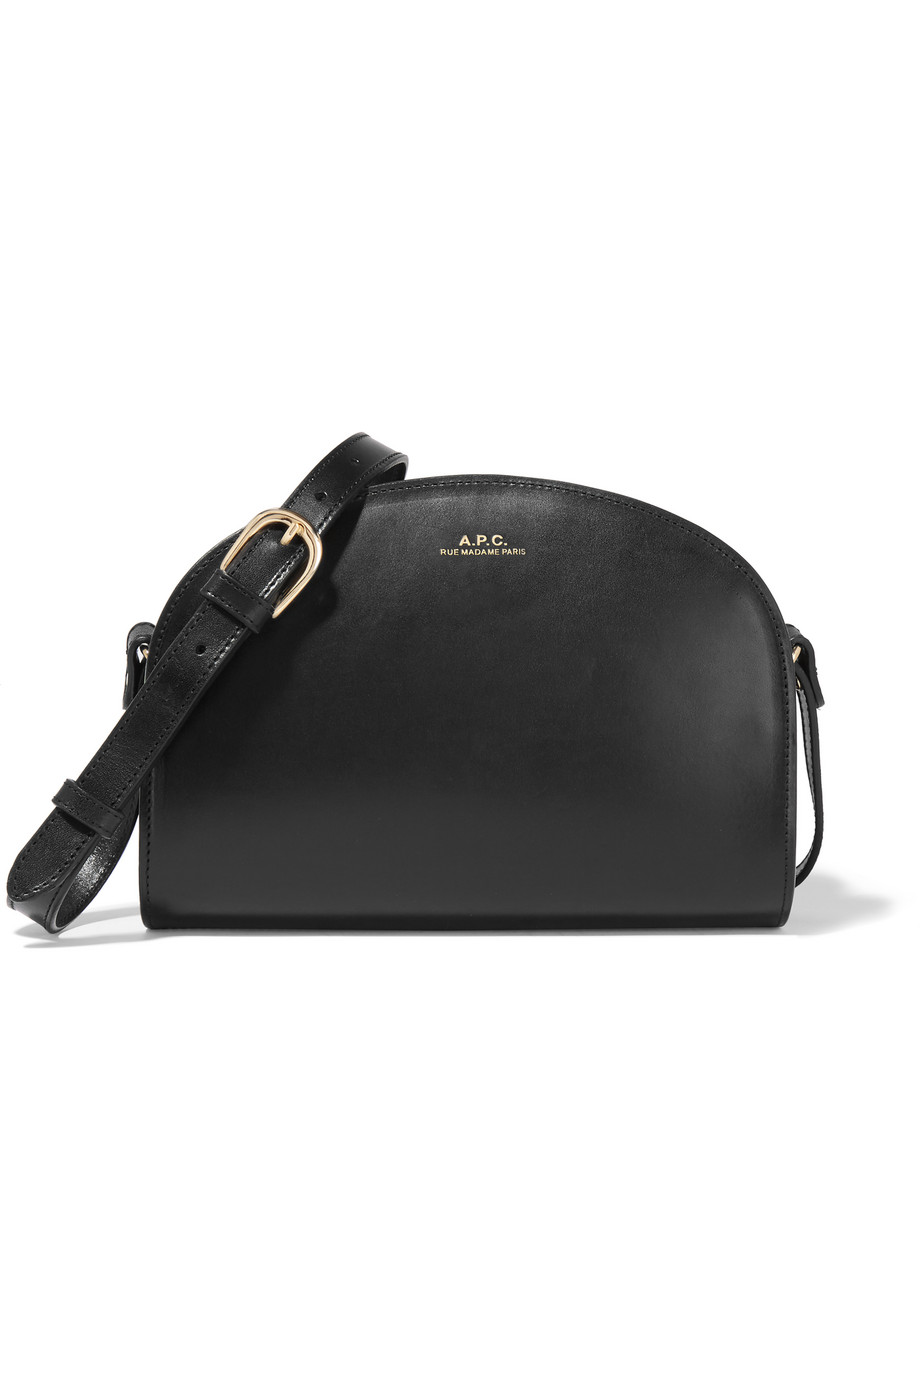 Sac Demi-Lune Leather Shoulder Bag, A.P.C. Atelier De Production Et De Création, Black, Women's